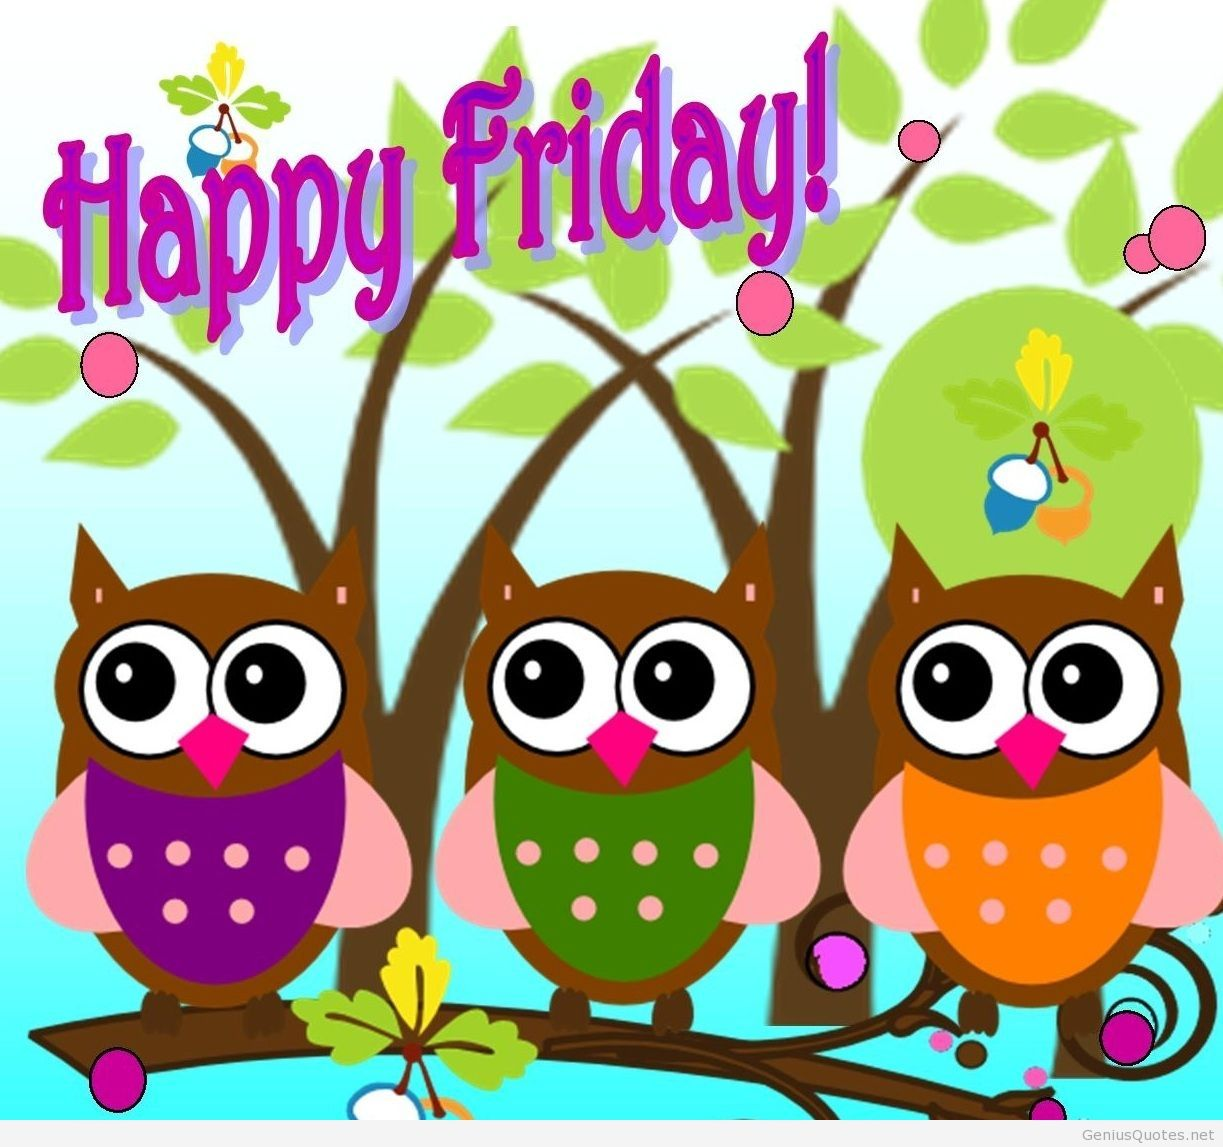 Friday clipart. Animated happy images google